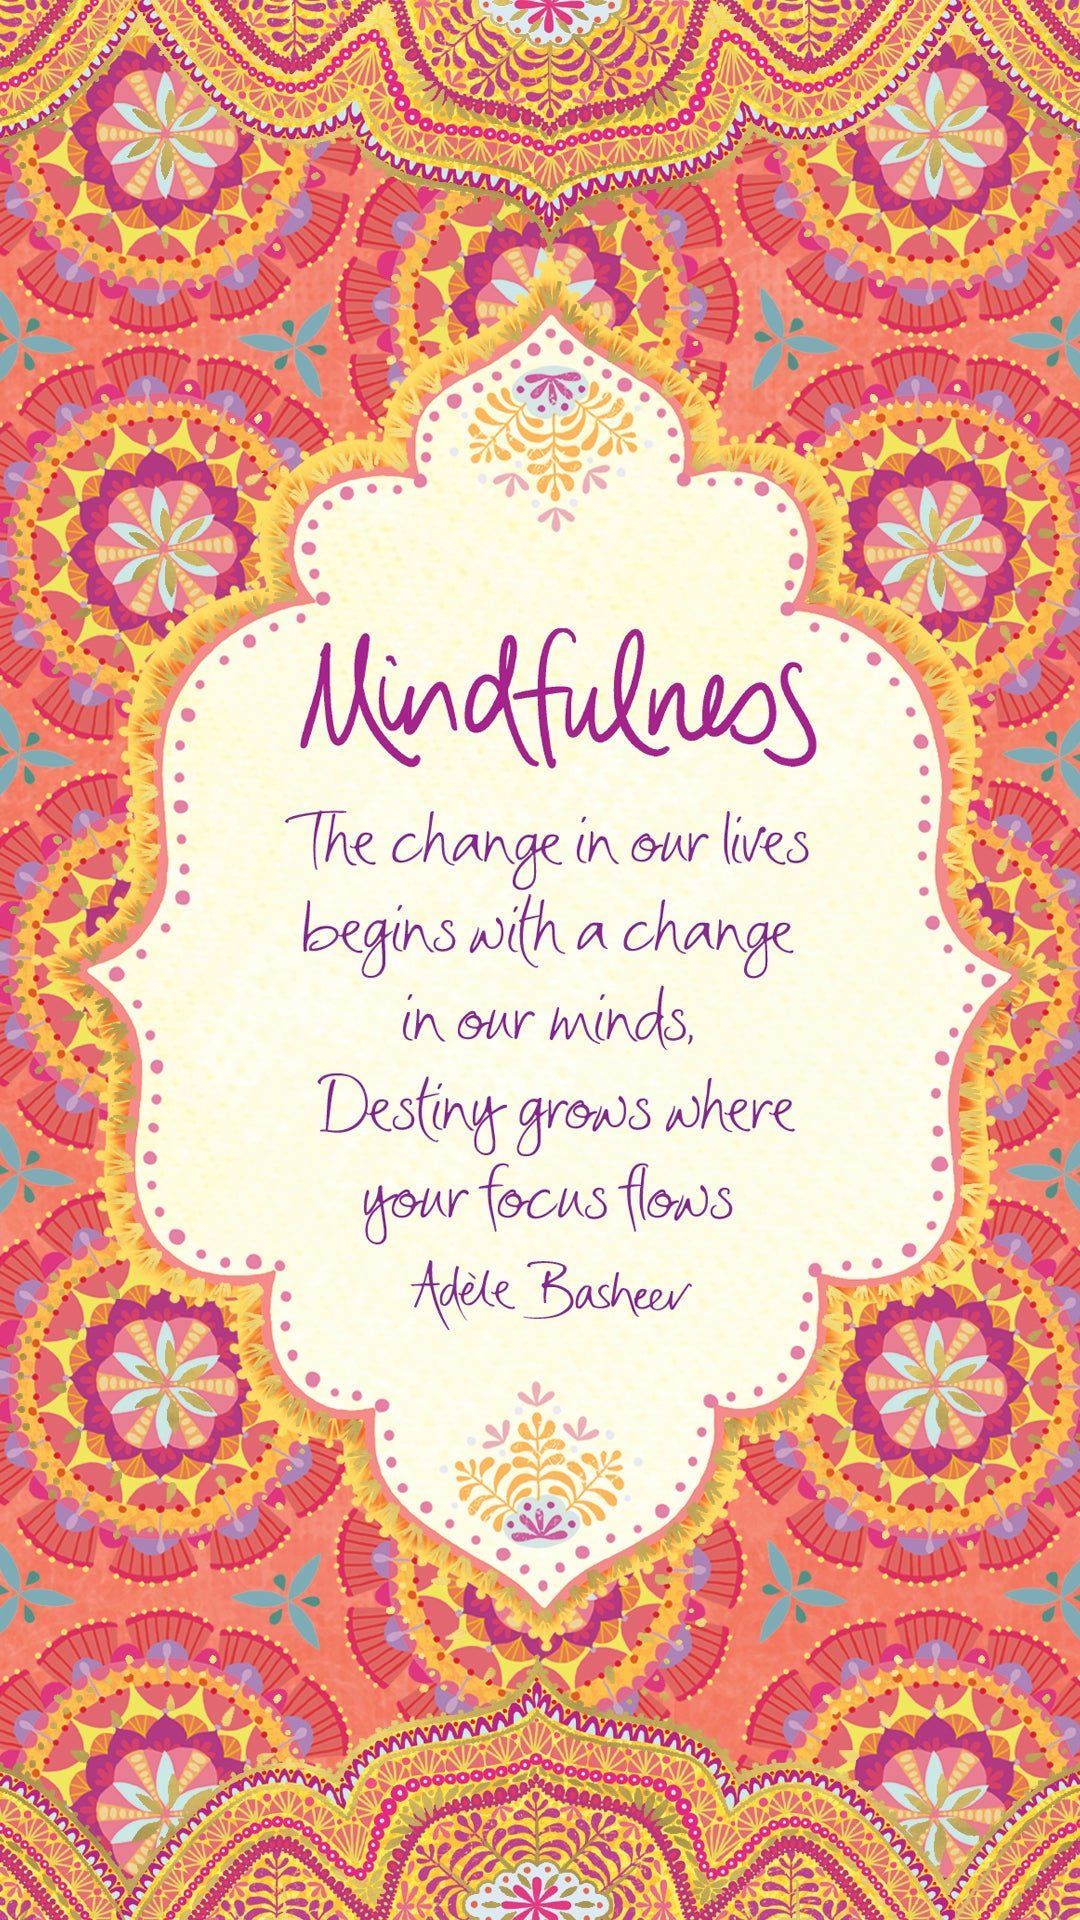 Intrinsic Mindfulness Quote By Adele Basheer - Digital Wallpaper